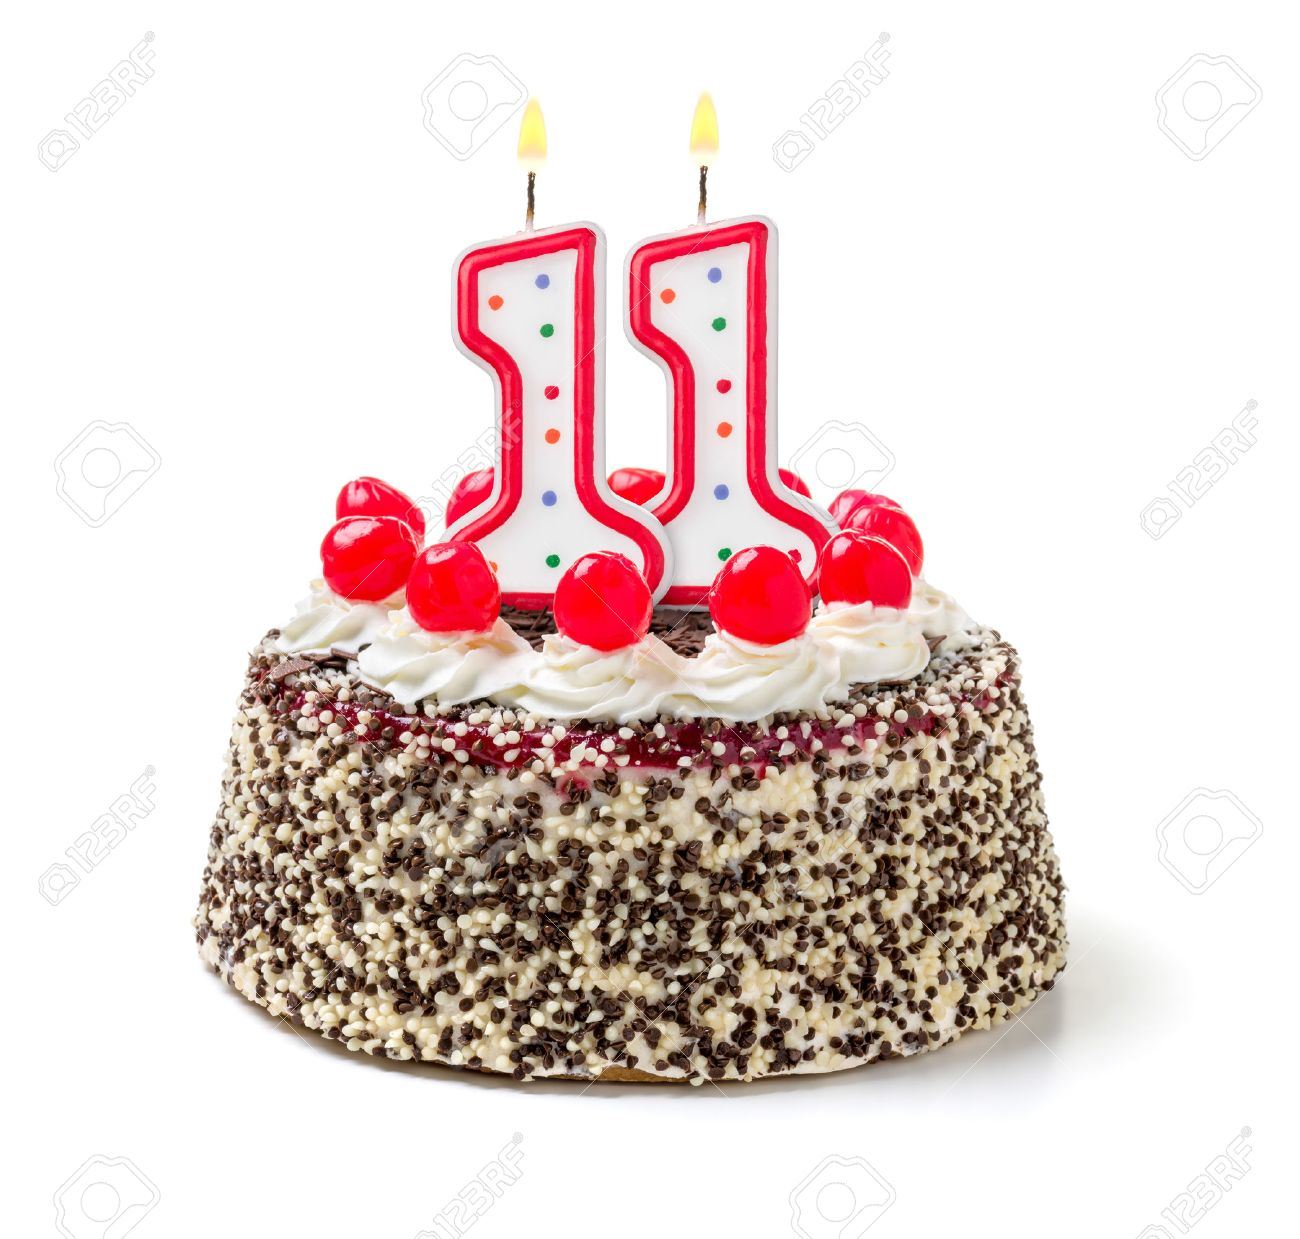 Birthday Cake With Burning Candle Number 11 Stock Photo